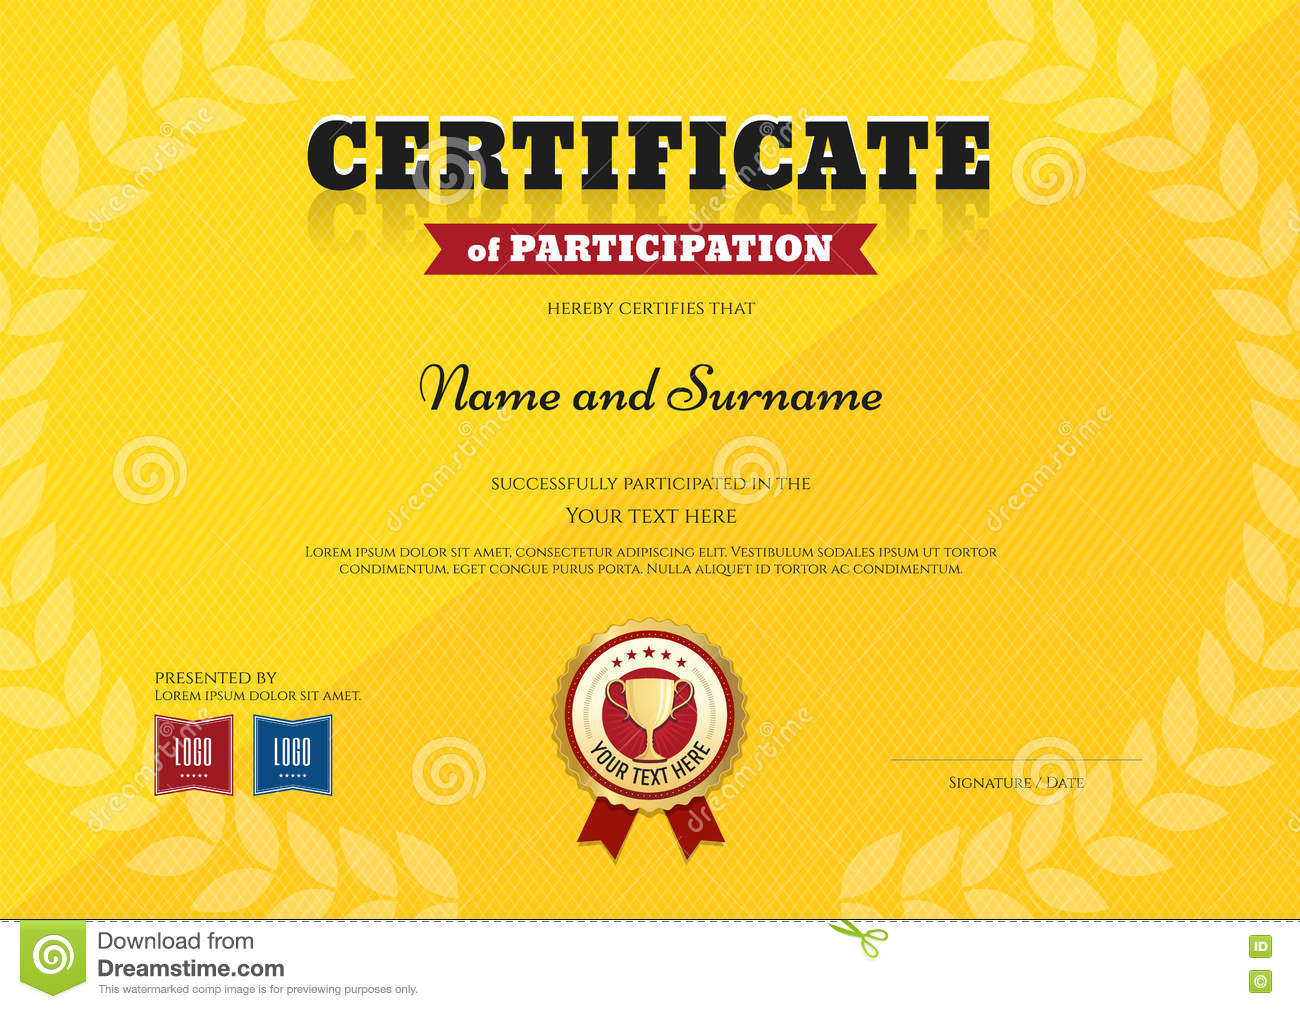 Certificate Of Participation Template In Sport Yellow Theme  Design Of Certificate Of Participation